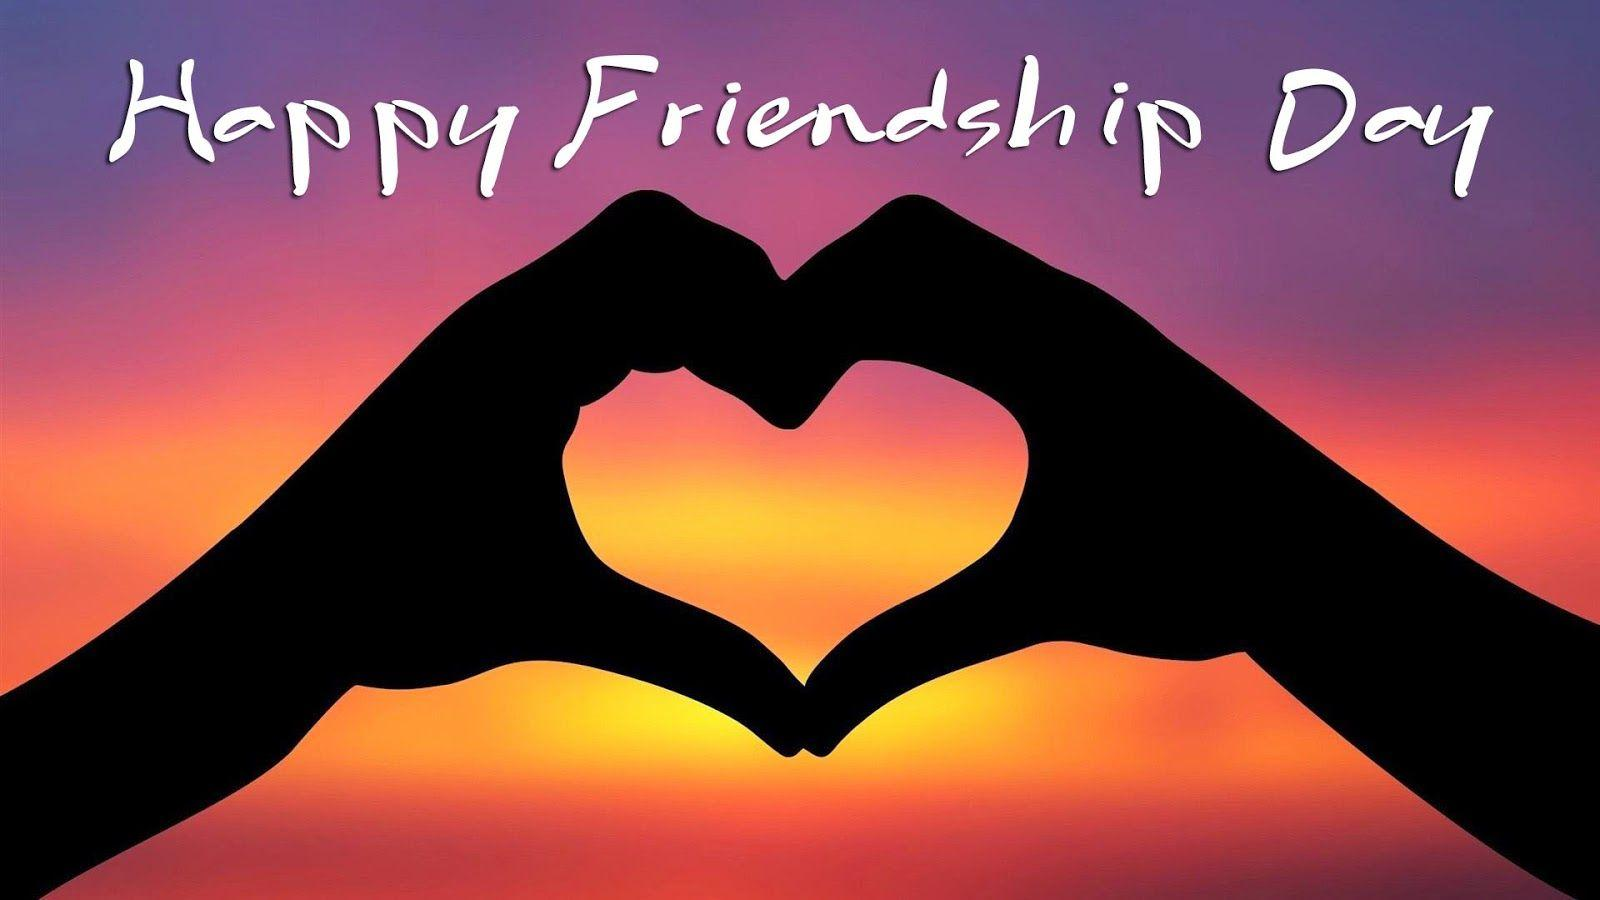 BEST LOVE FRIENDSHIP DAY WALLPAPER FOR BOY AND GIRL